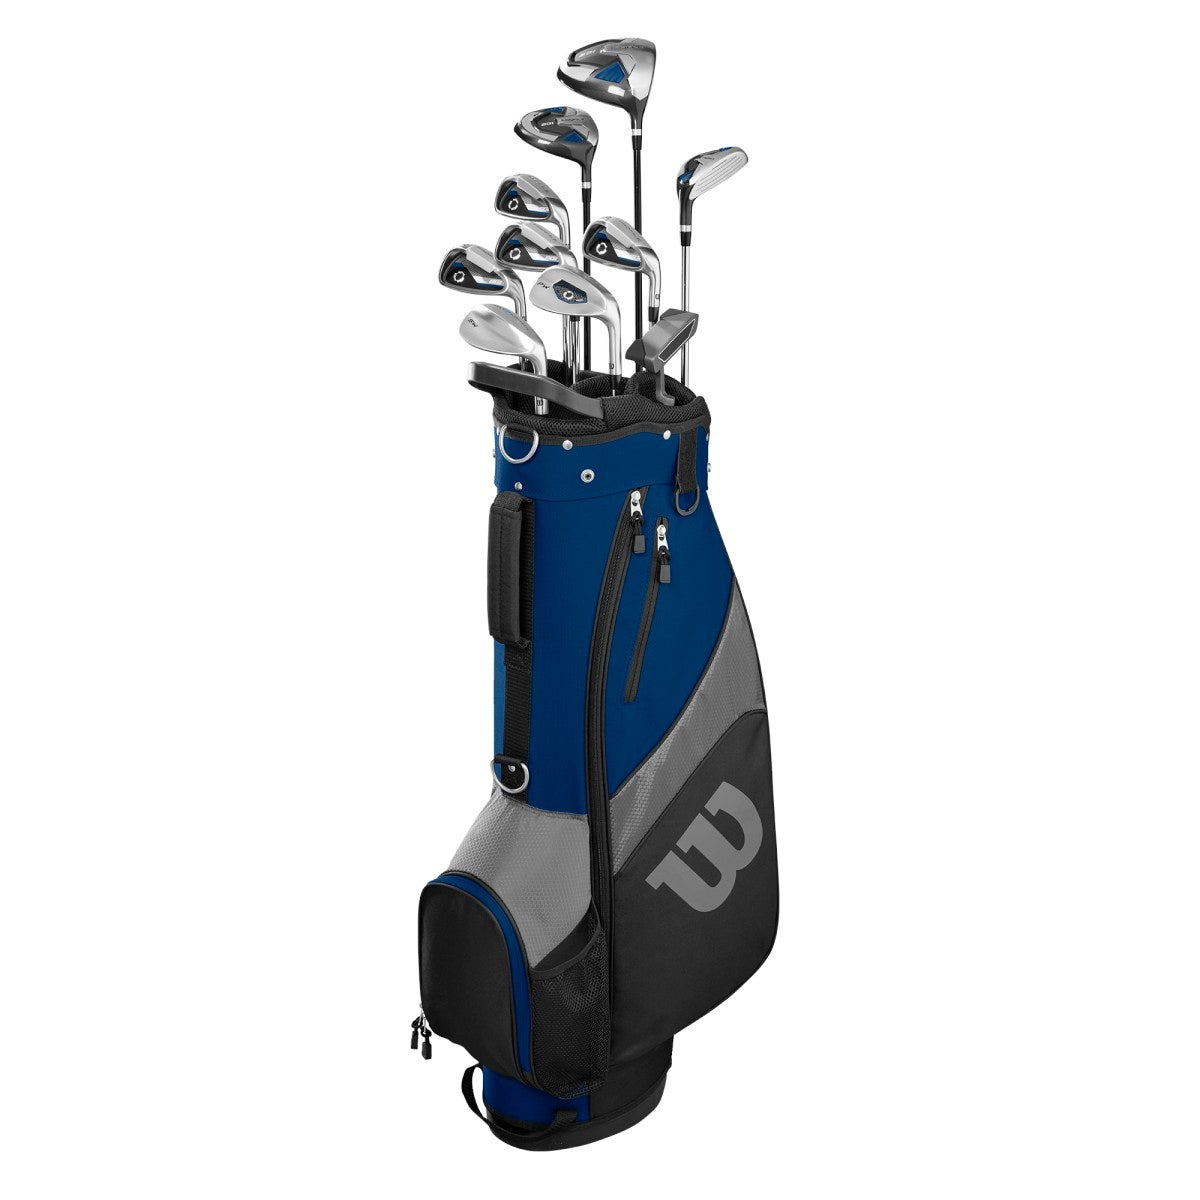 Profile SGI Senior Complete Golf Club Set - Cart